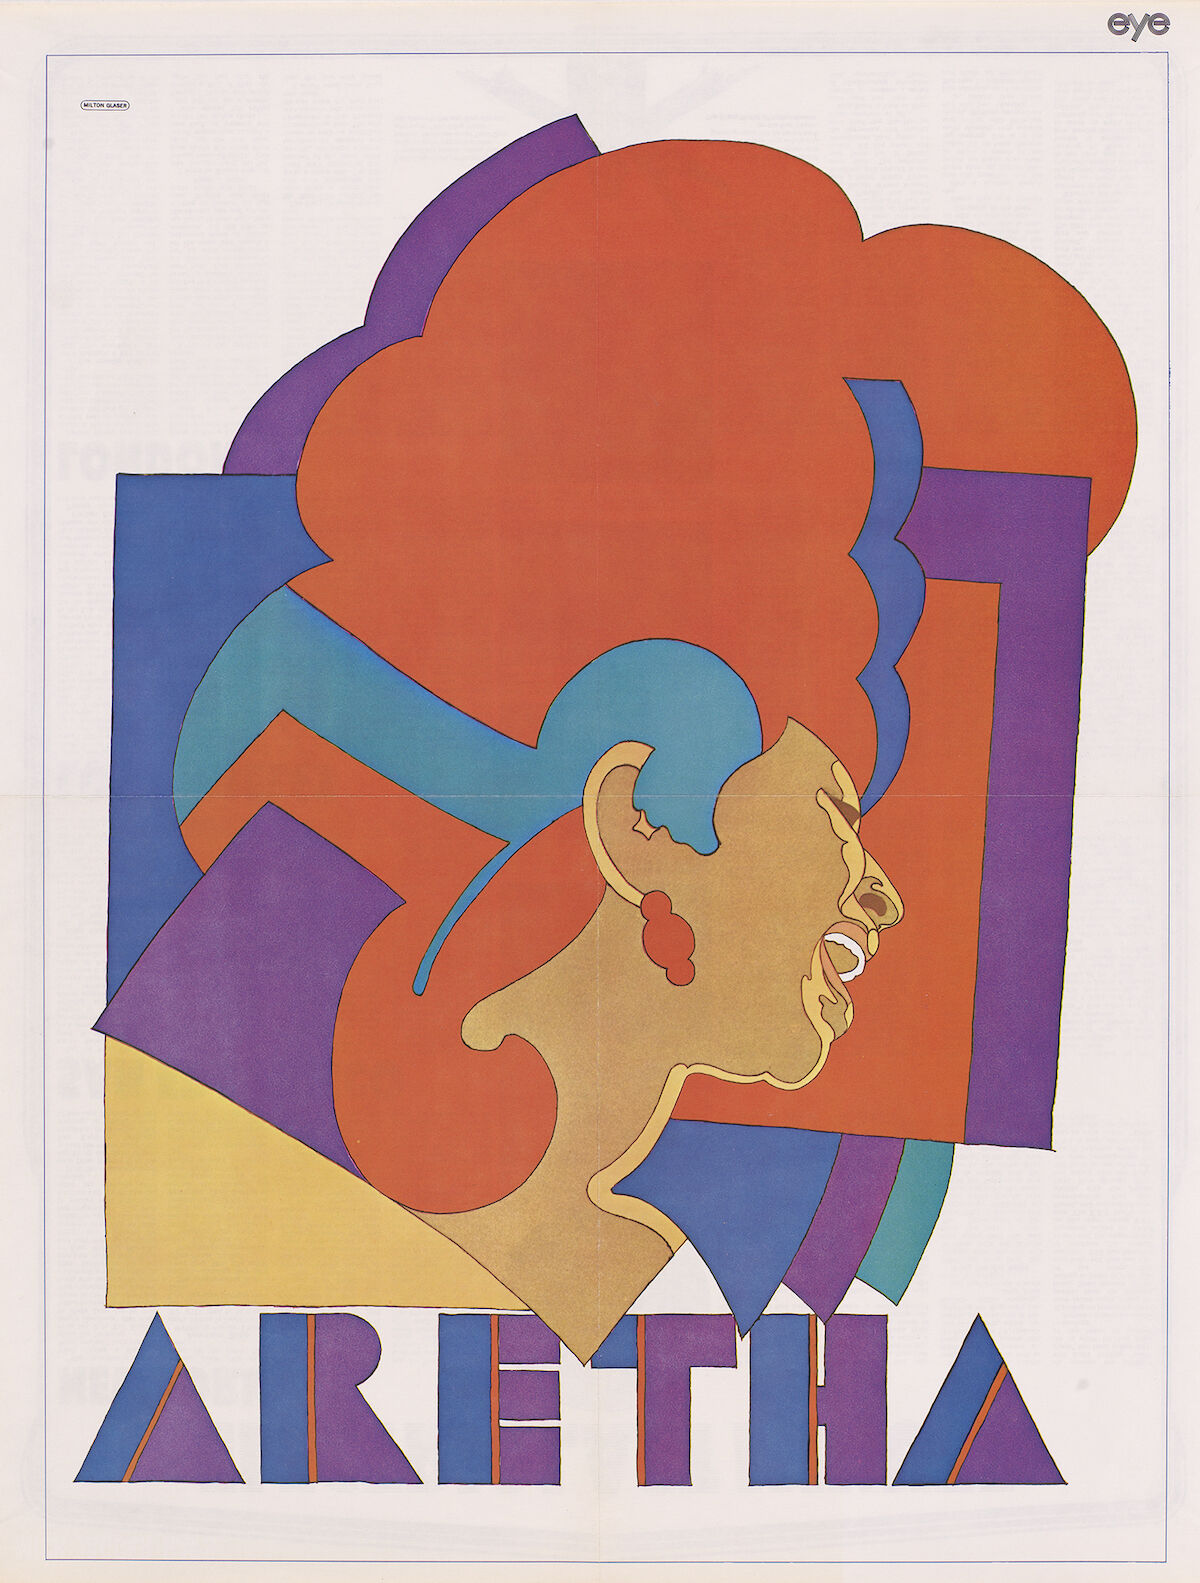 Aretha Franklin by Milton Glaser, color photolithographic poster, 1968. Courtesy the National Portrait Gallery, Smithsonian Institution; © Milton Glaser